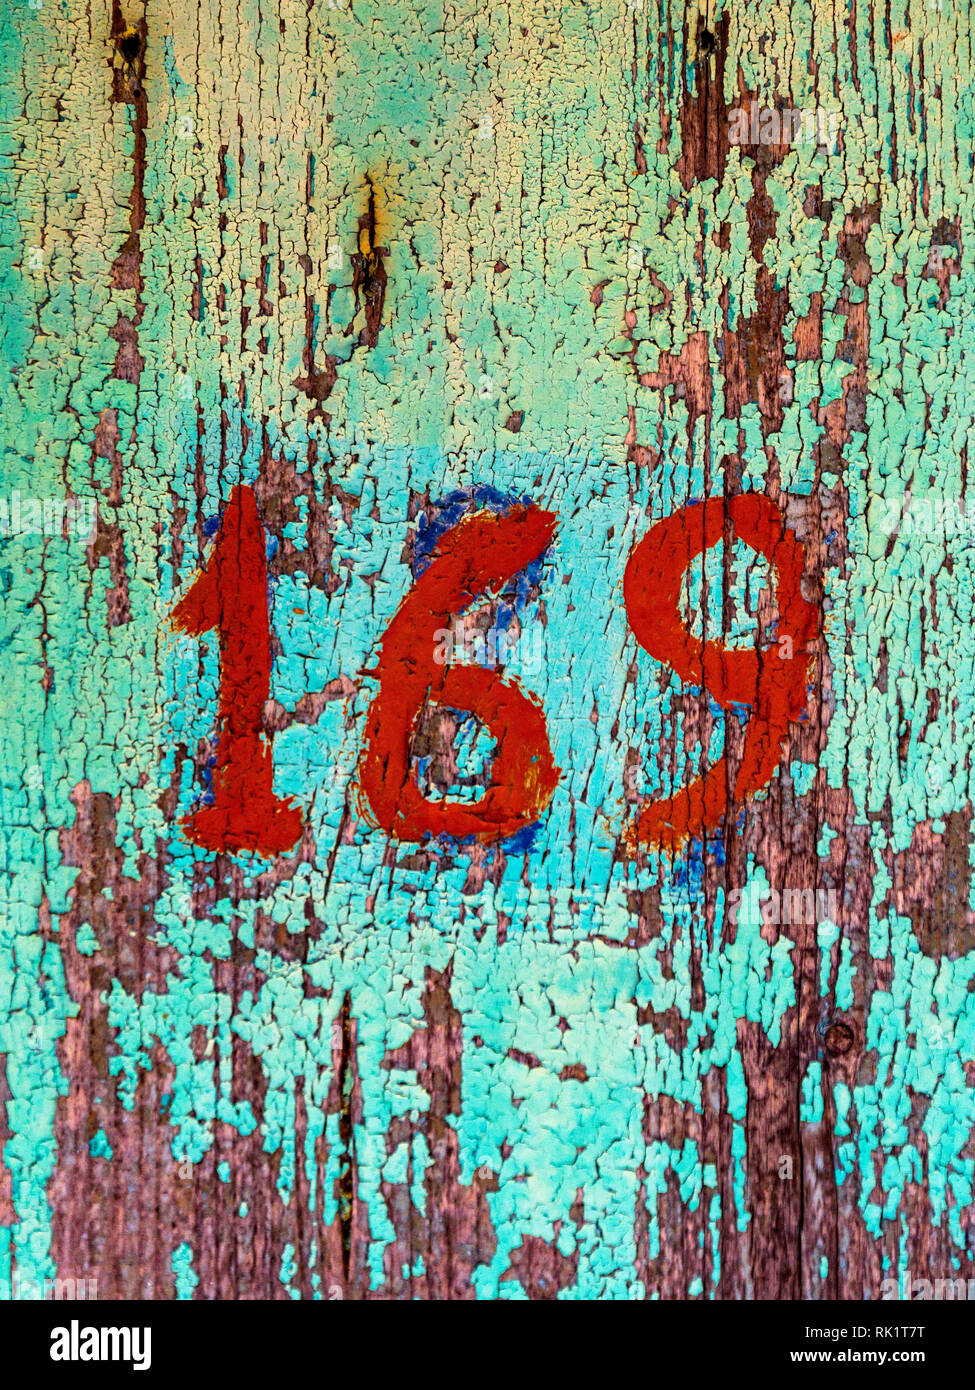 Numer 169 painted on old decayed door - Stock Image